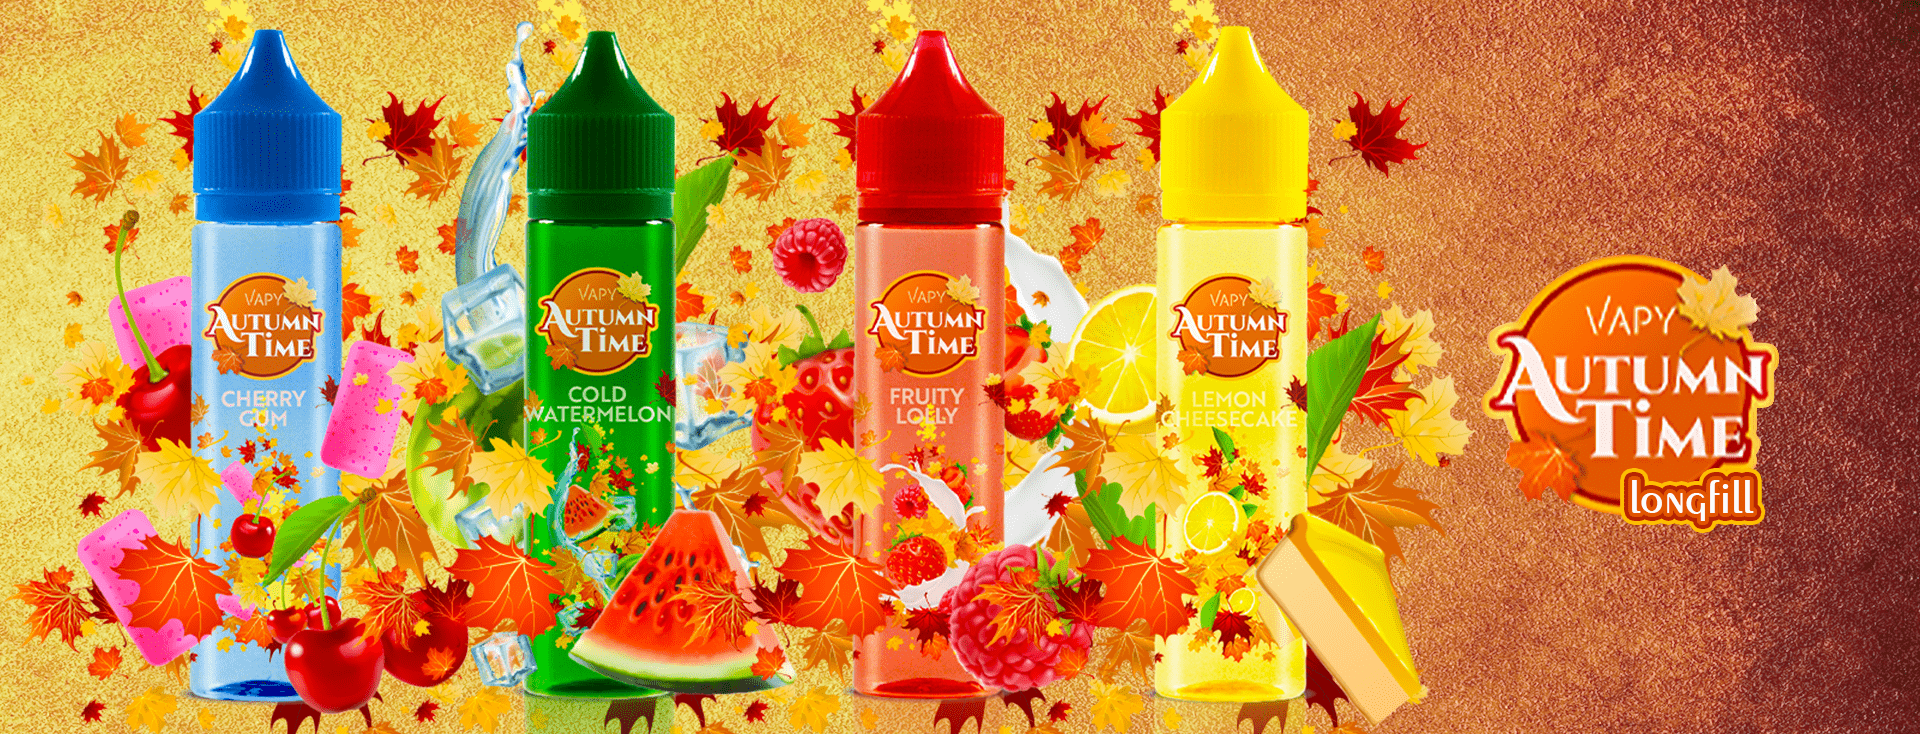 Vapy Autumn Time Longfill